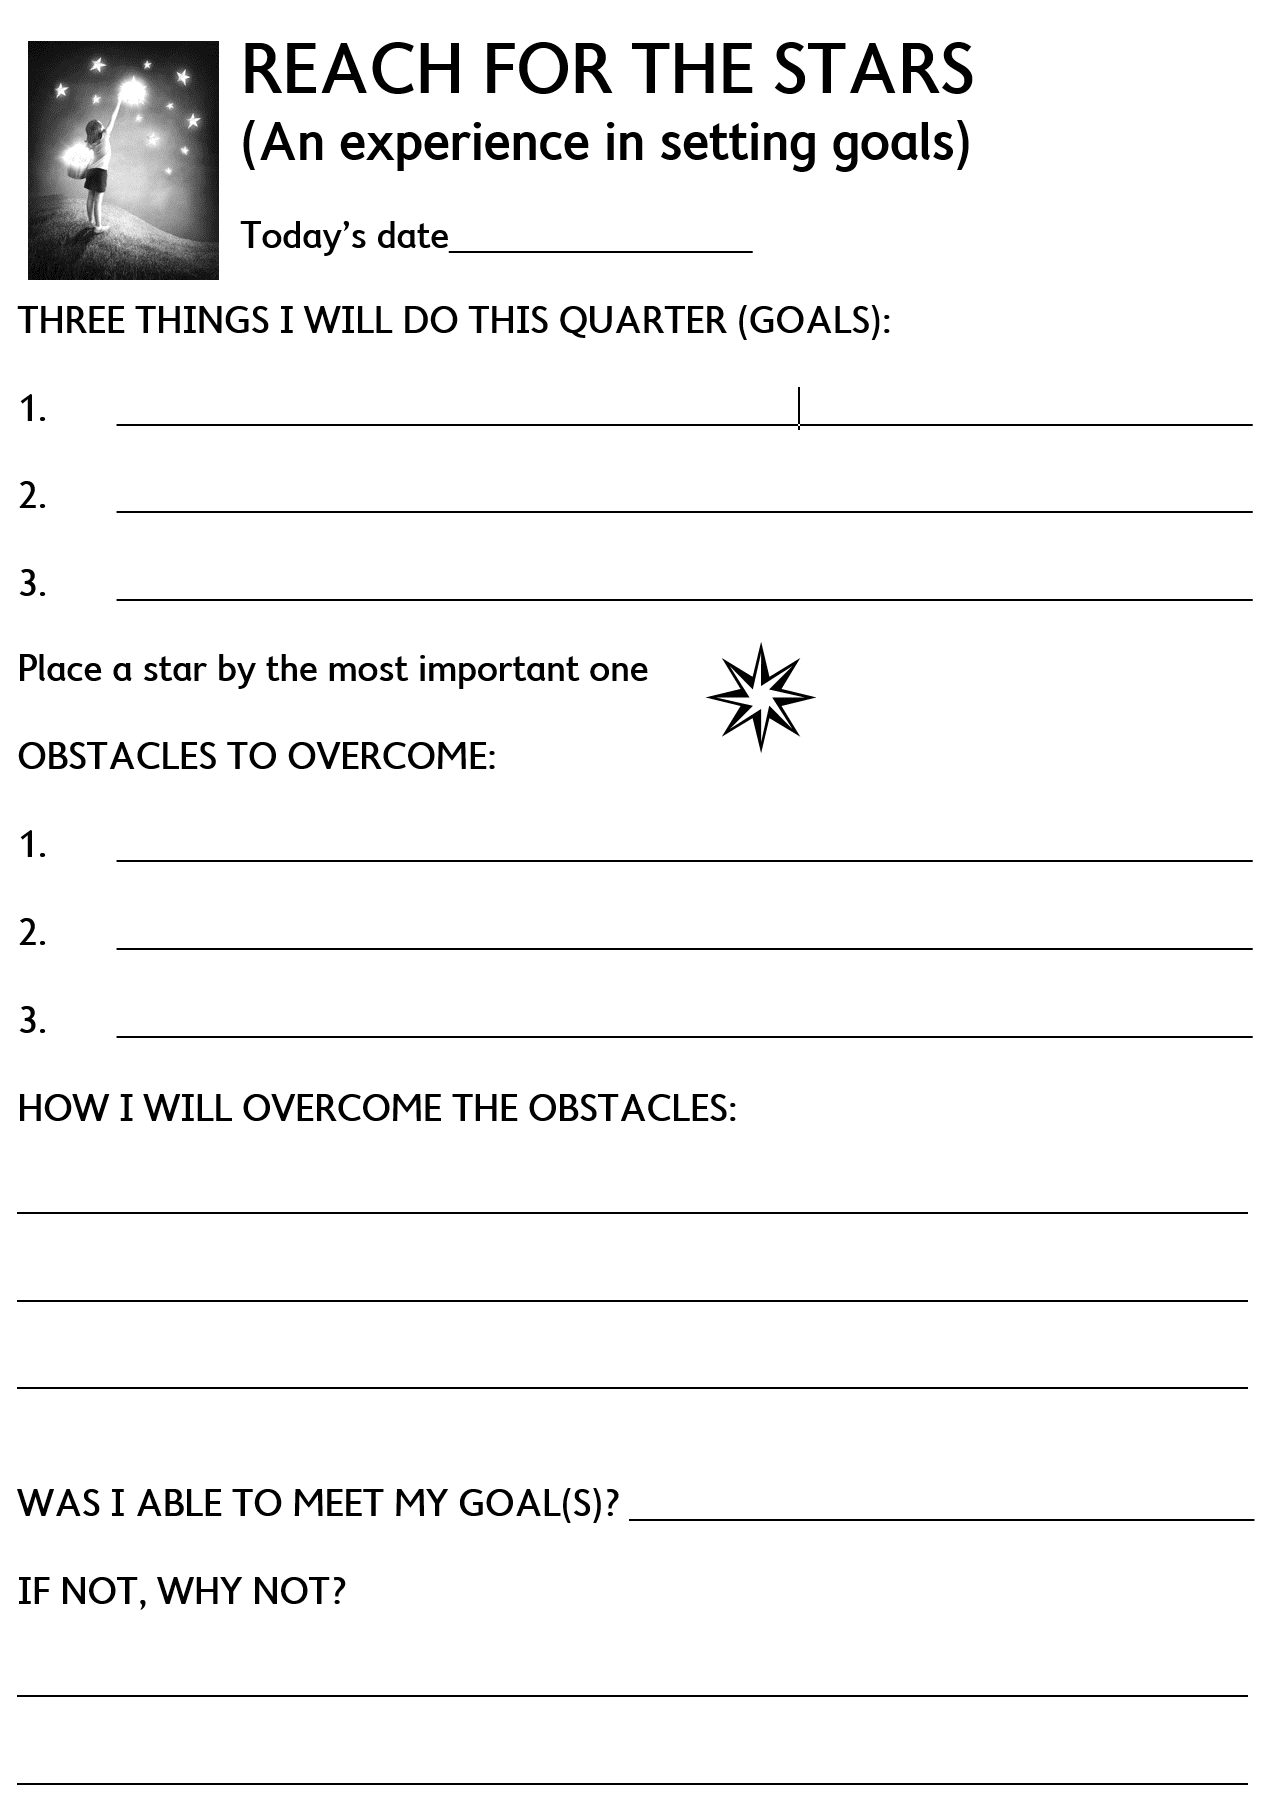 Goal setting form for motivating students